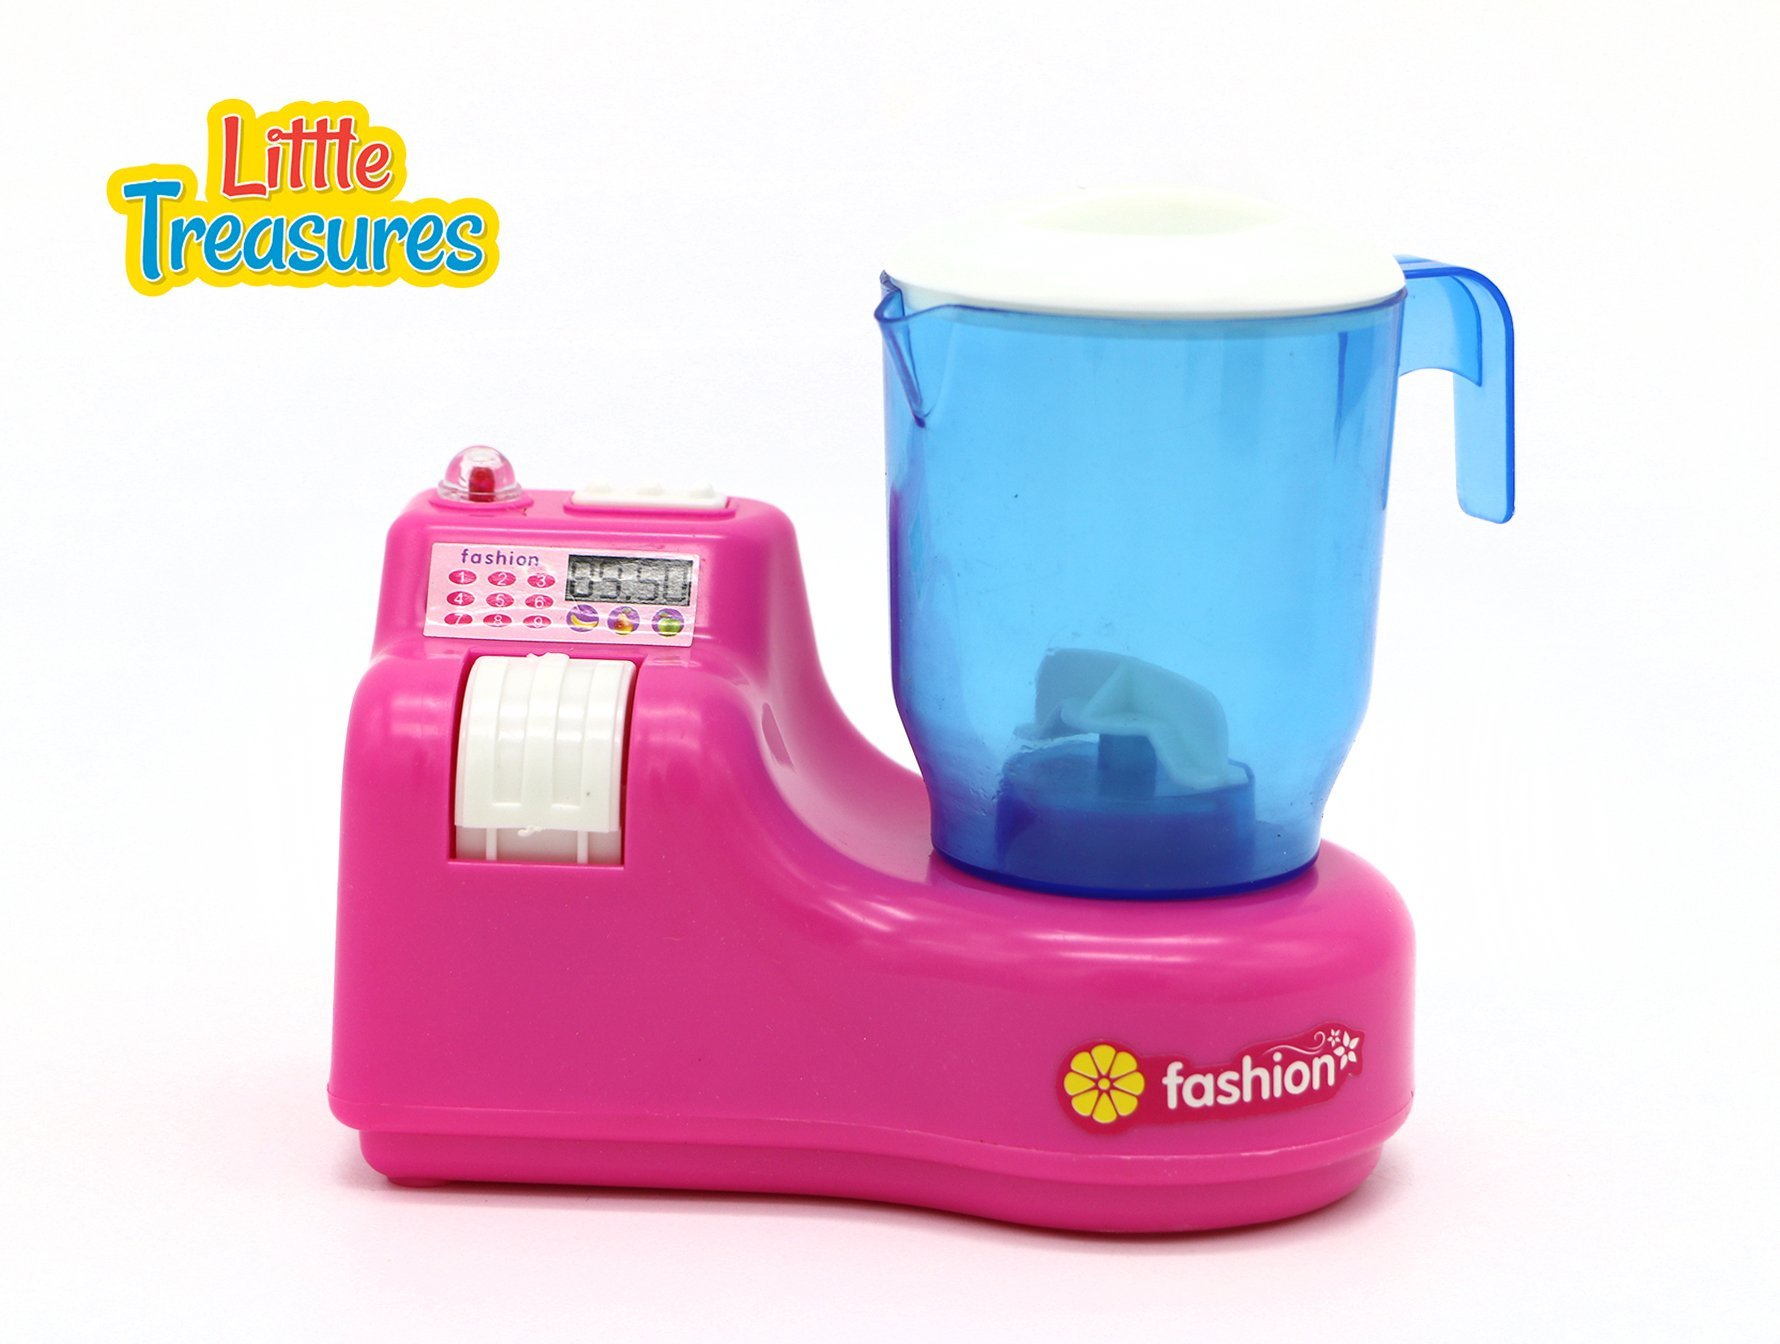 Little Treasures Small Sized Toy Blender Kitchen Appliance Play Set by Little Treasures